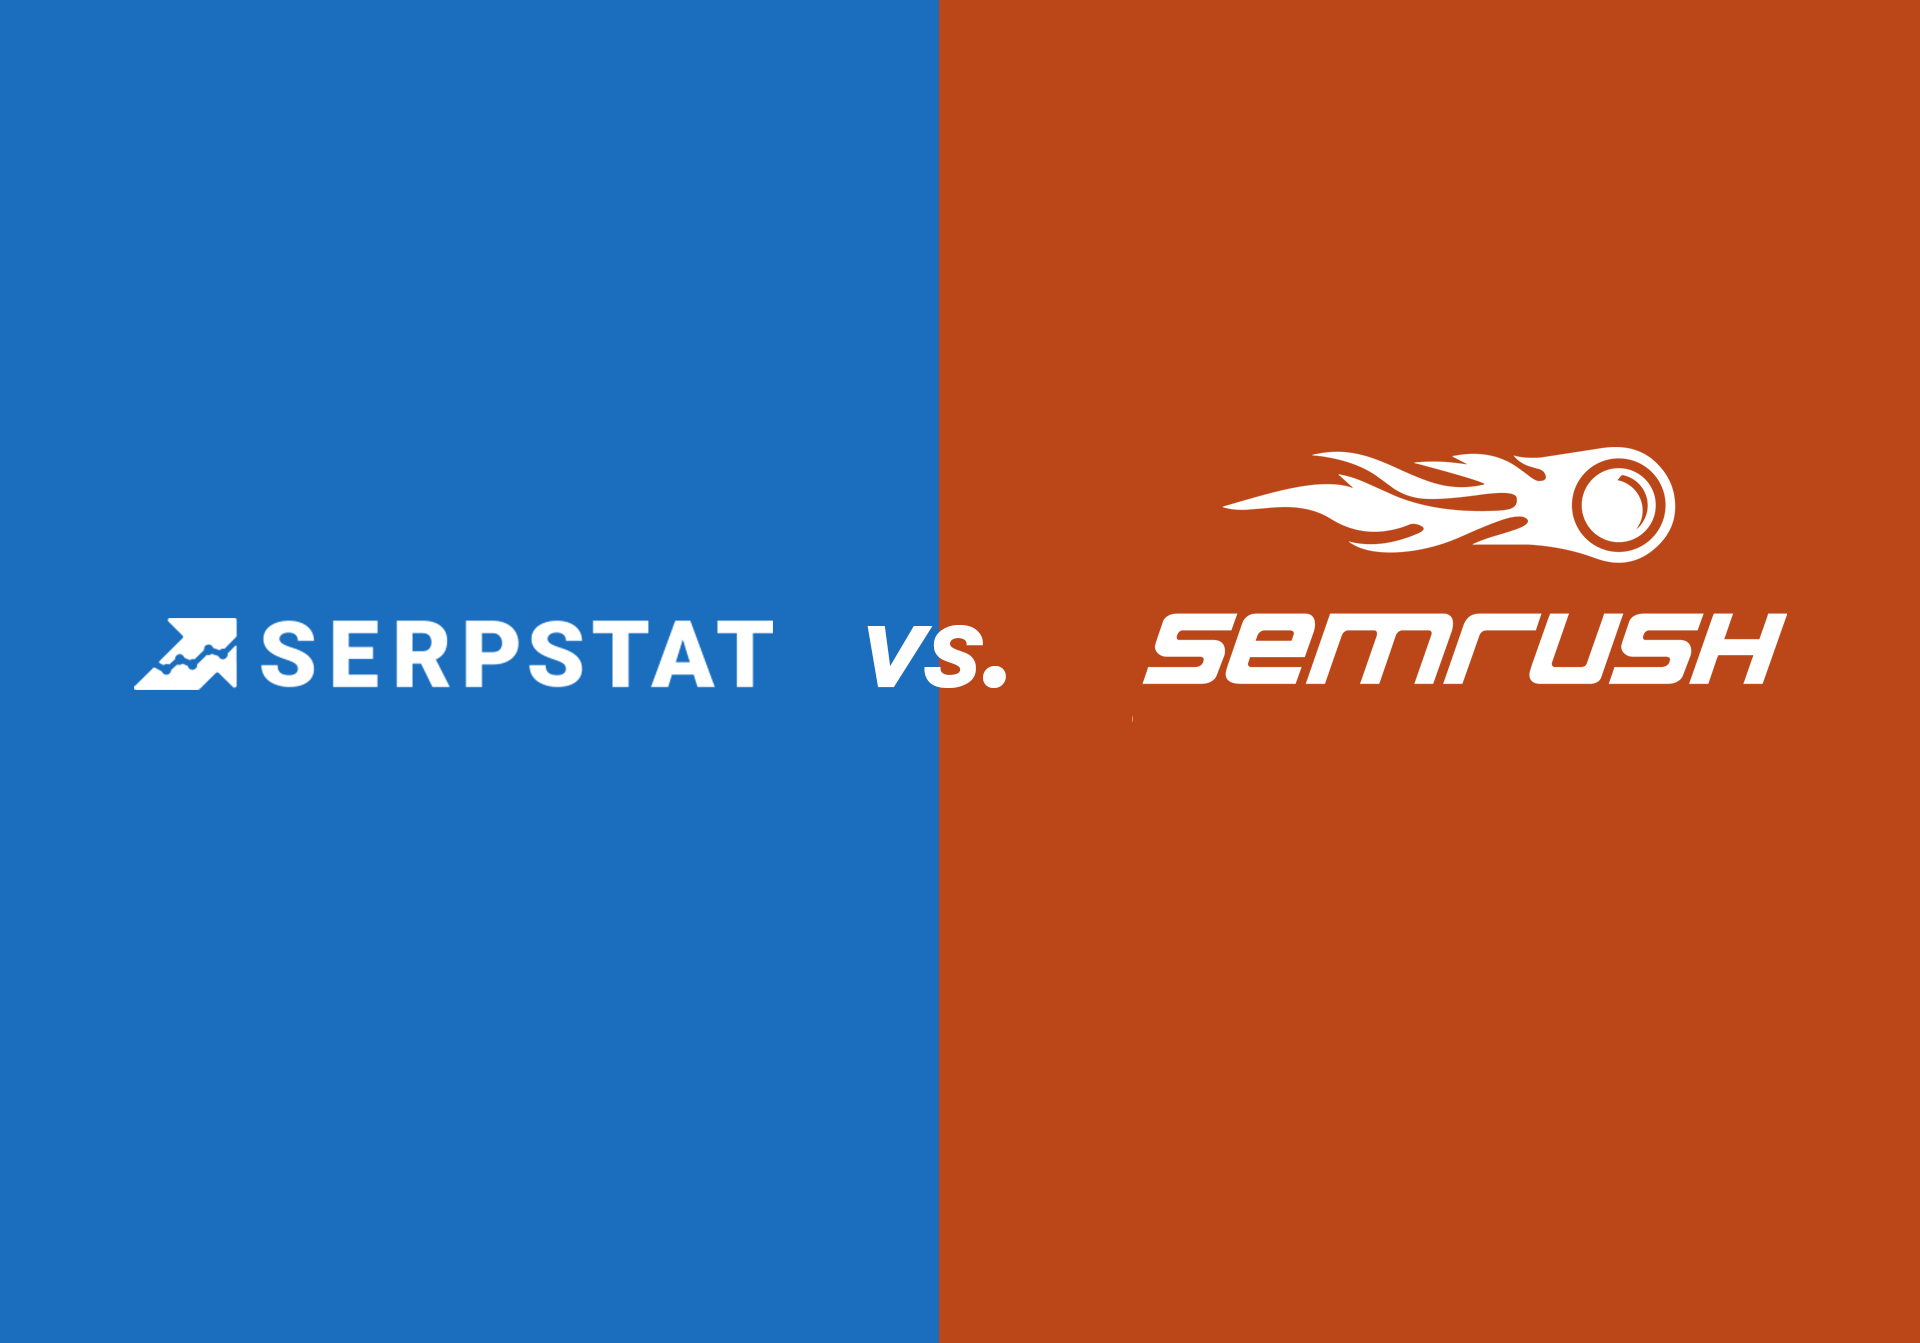 Seo Software Semrush Deals For Students May 2020